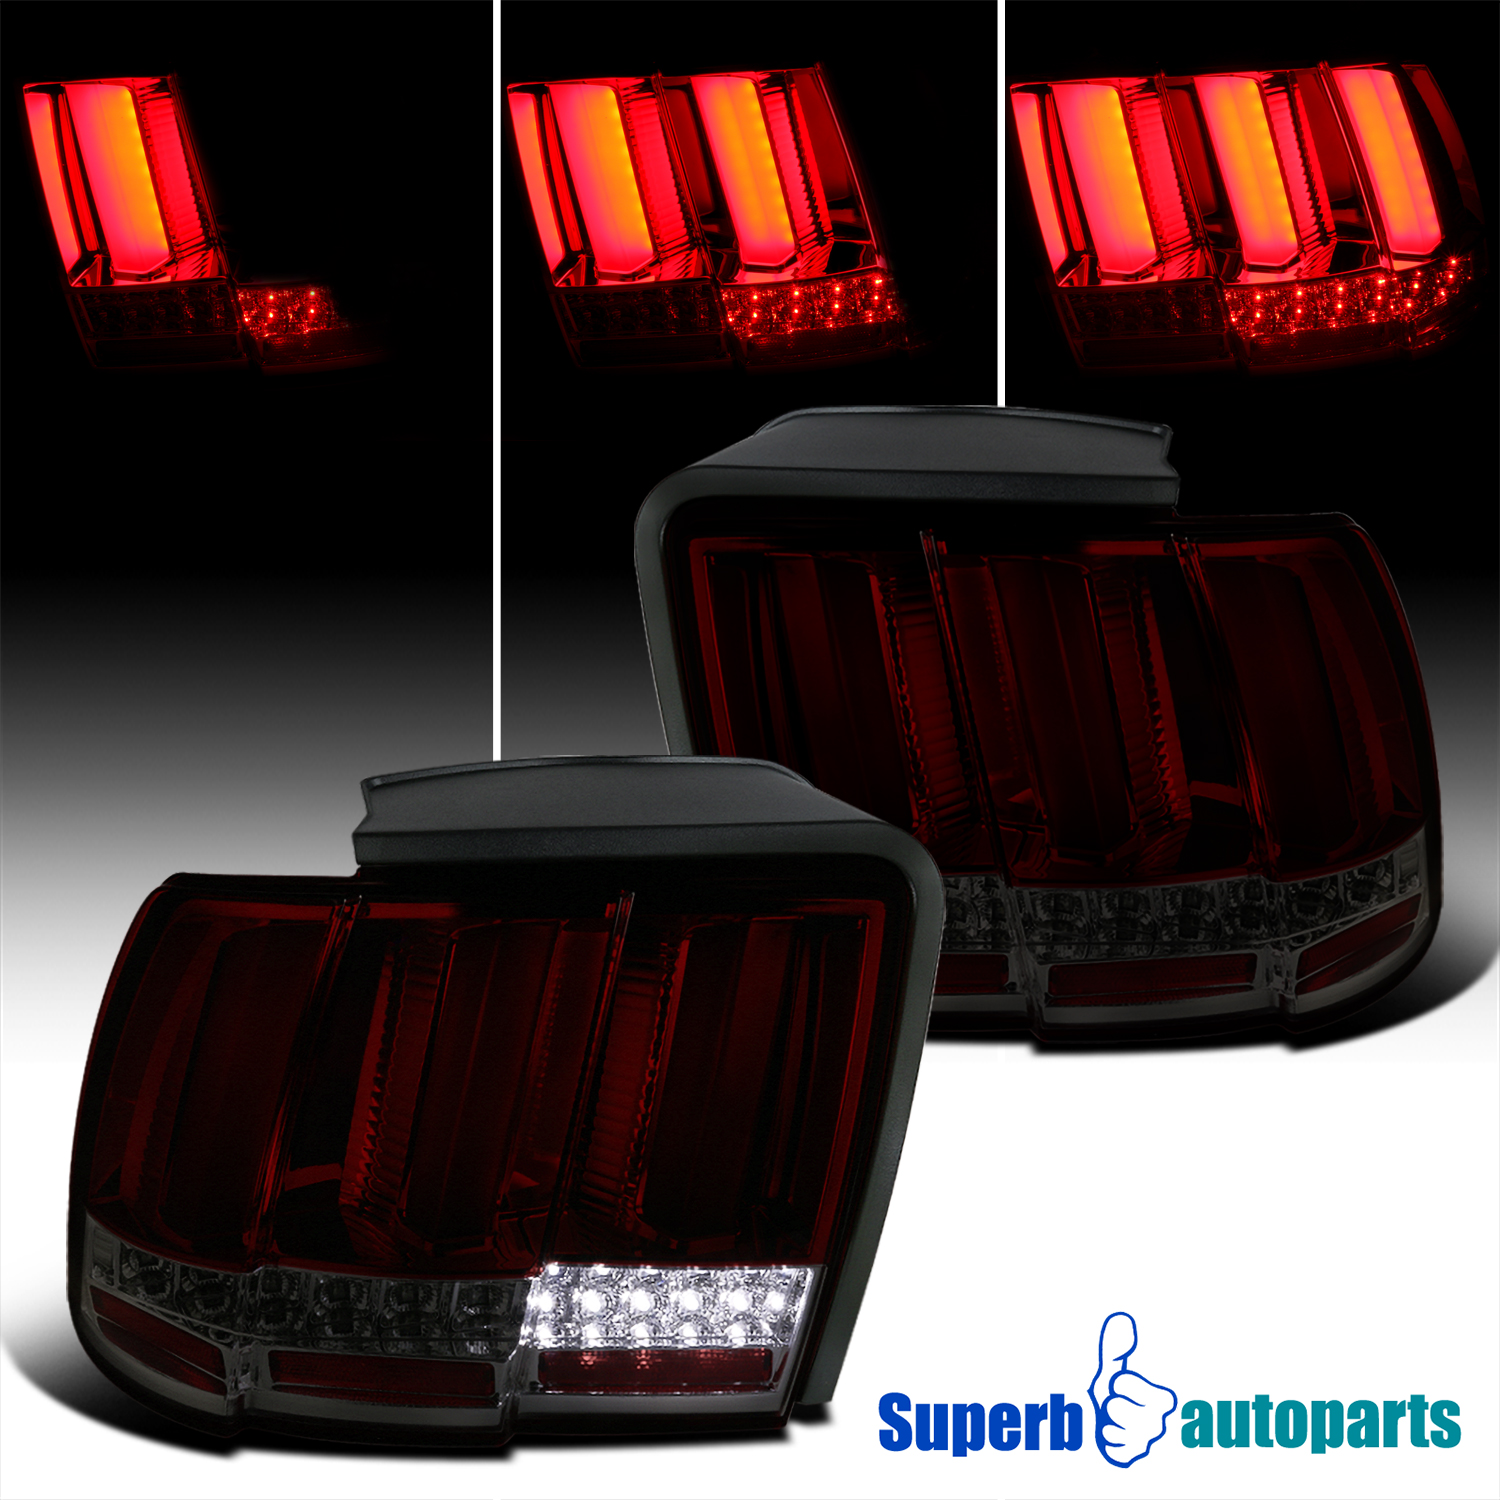 seq led 1999 2004 ford mustang sequential led tail brake. Black Bedroom Furniture Sets. Home Design Ideas